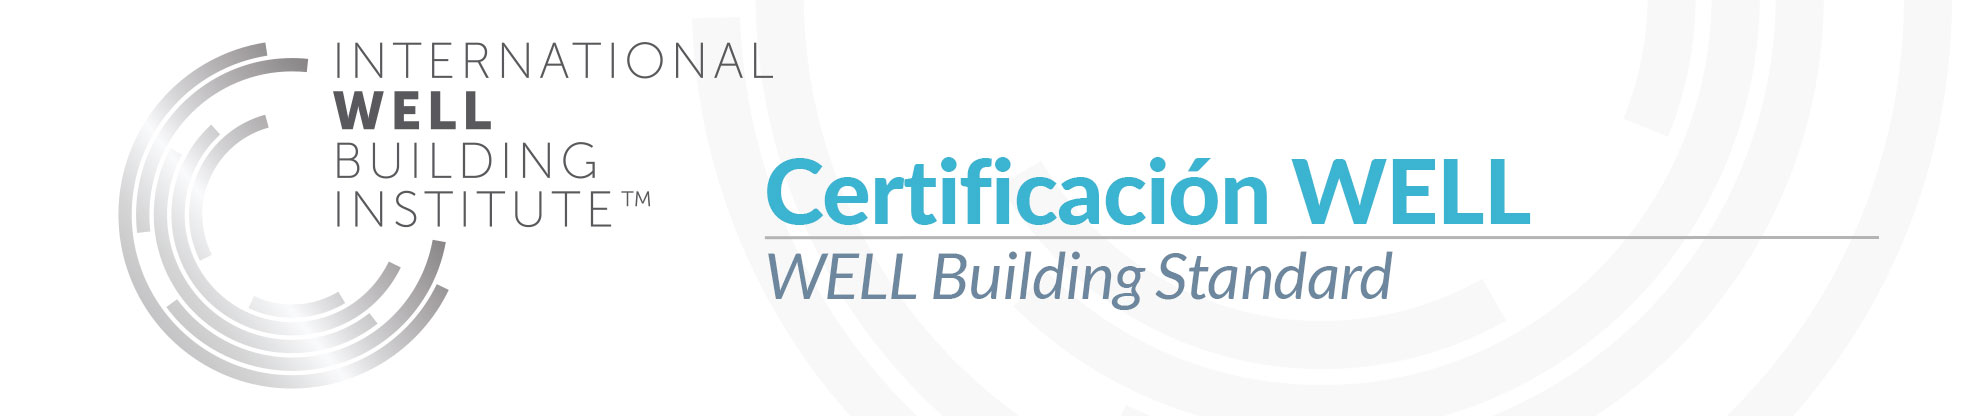 Certificación WELL avalada por el International WELL Building Institute